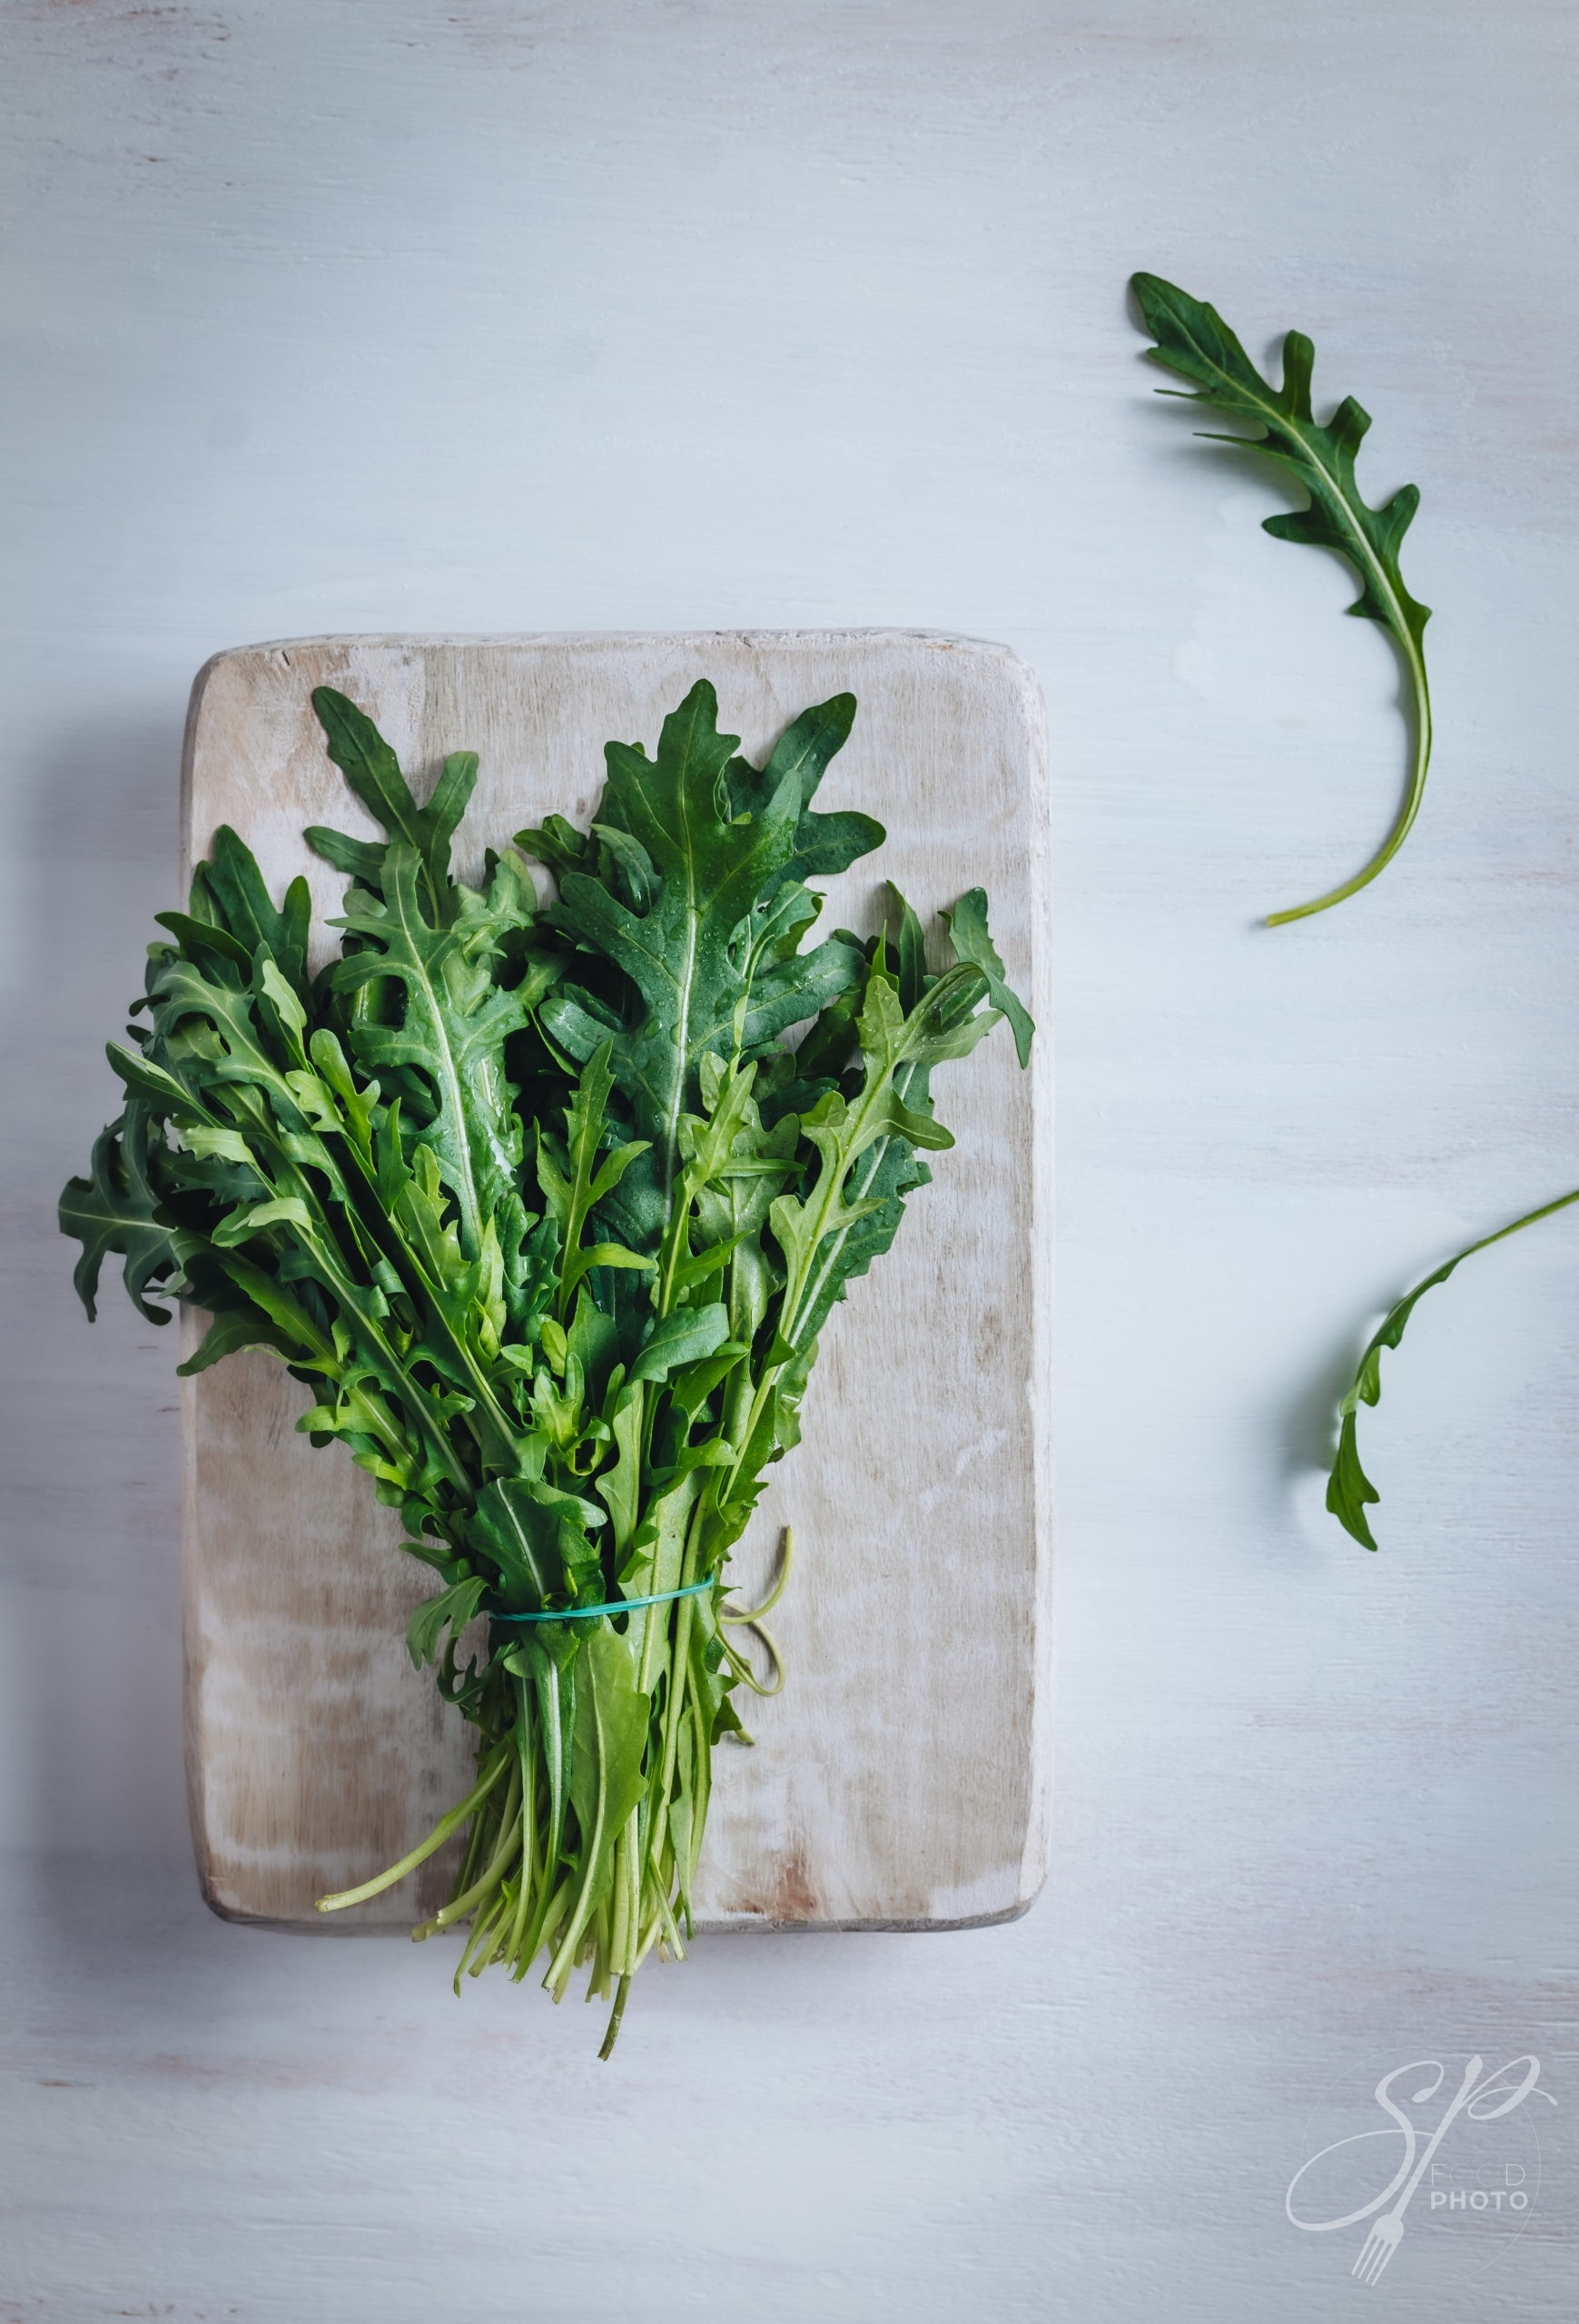 Fresh rocket leaves on a wooden table